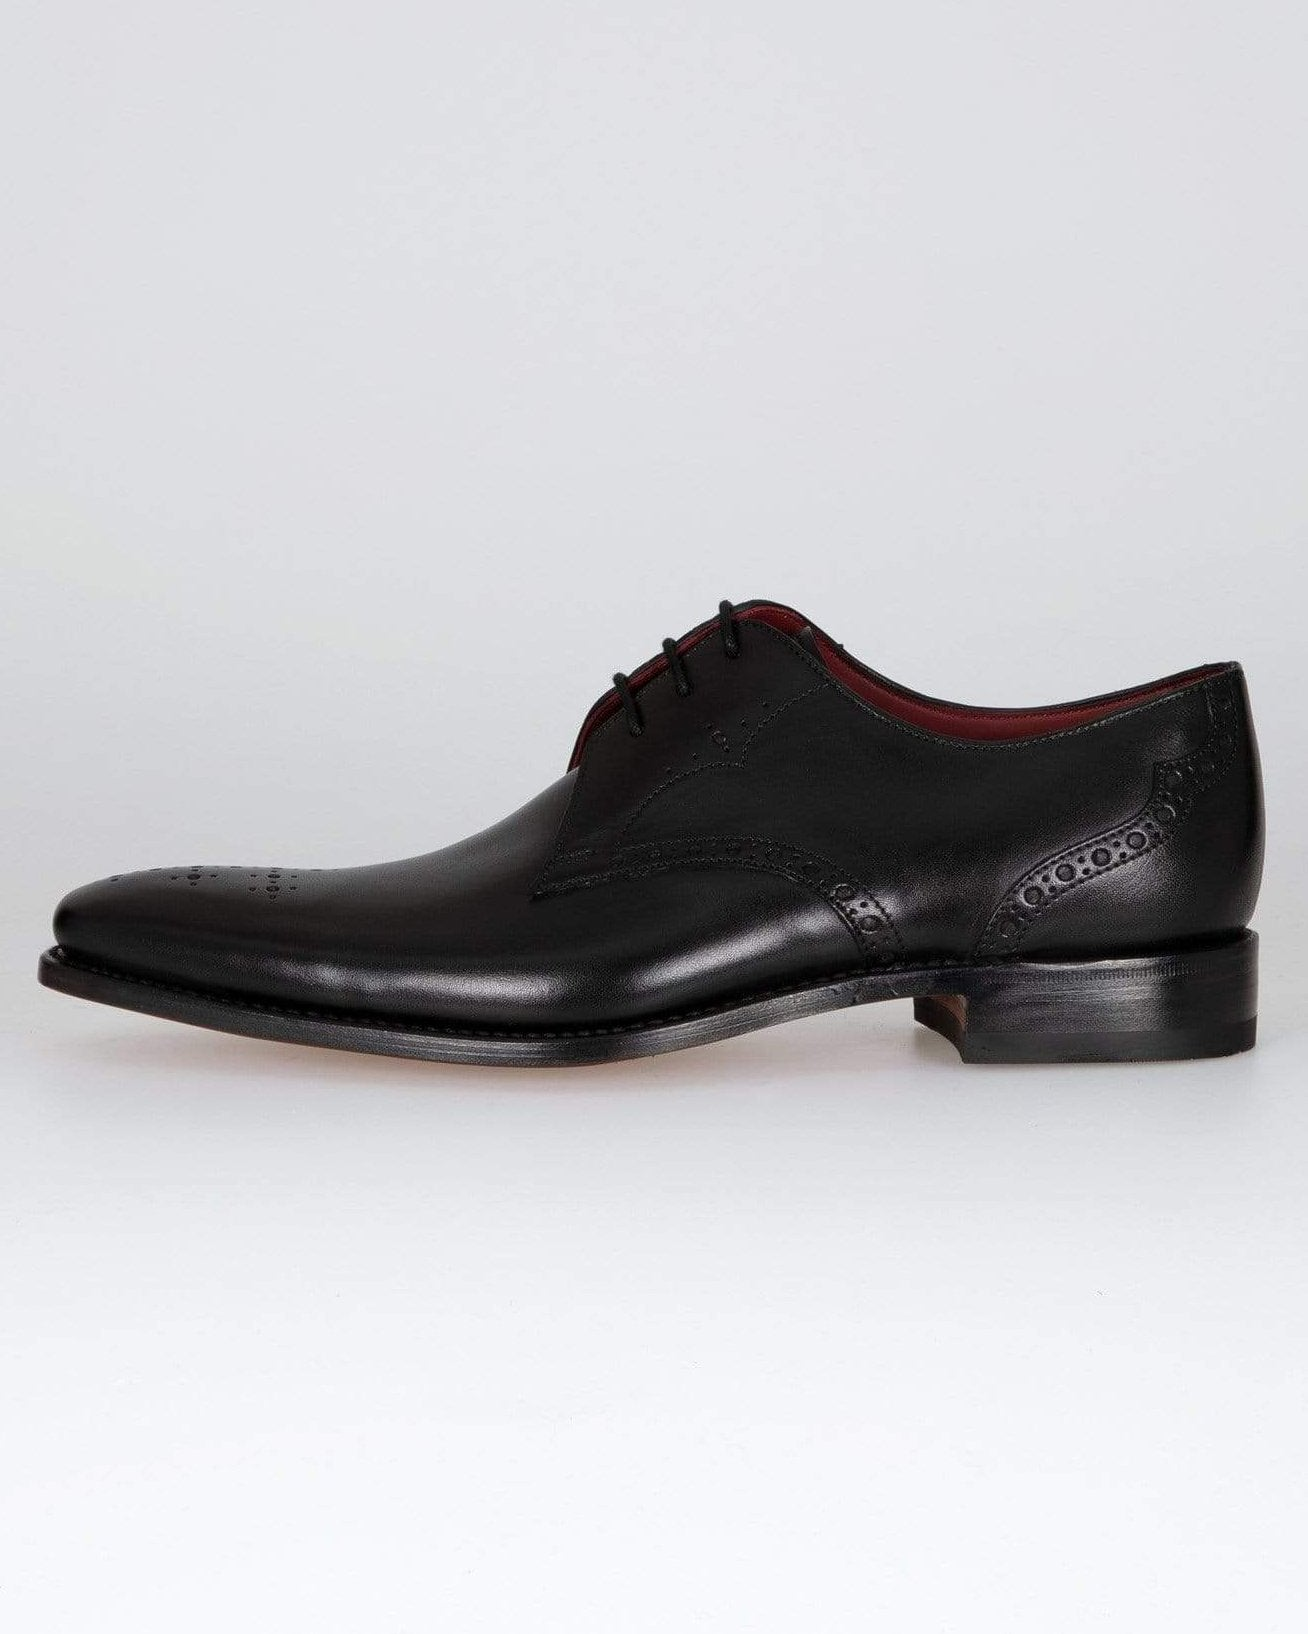 Loake Hannibal Derby Shoe - Black UK 8.5 HANB85 5050362264676 Loake Shoemakers Shoes